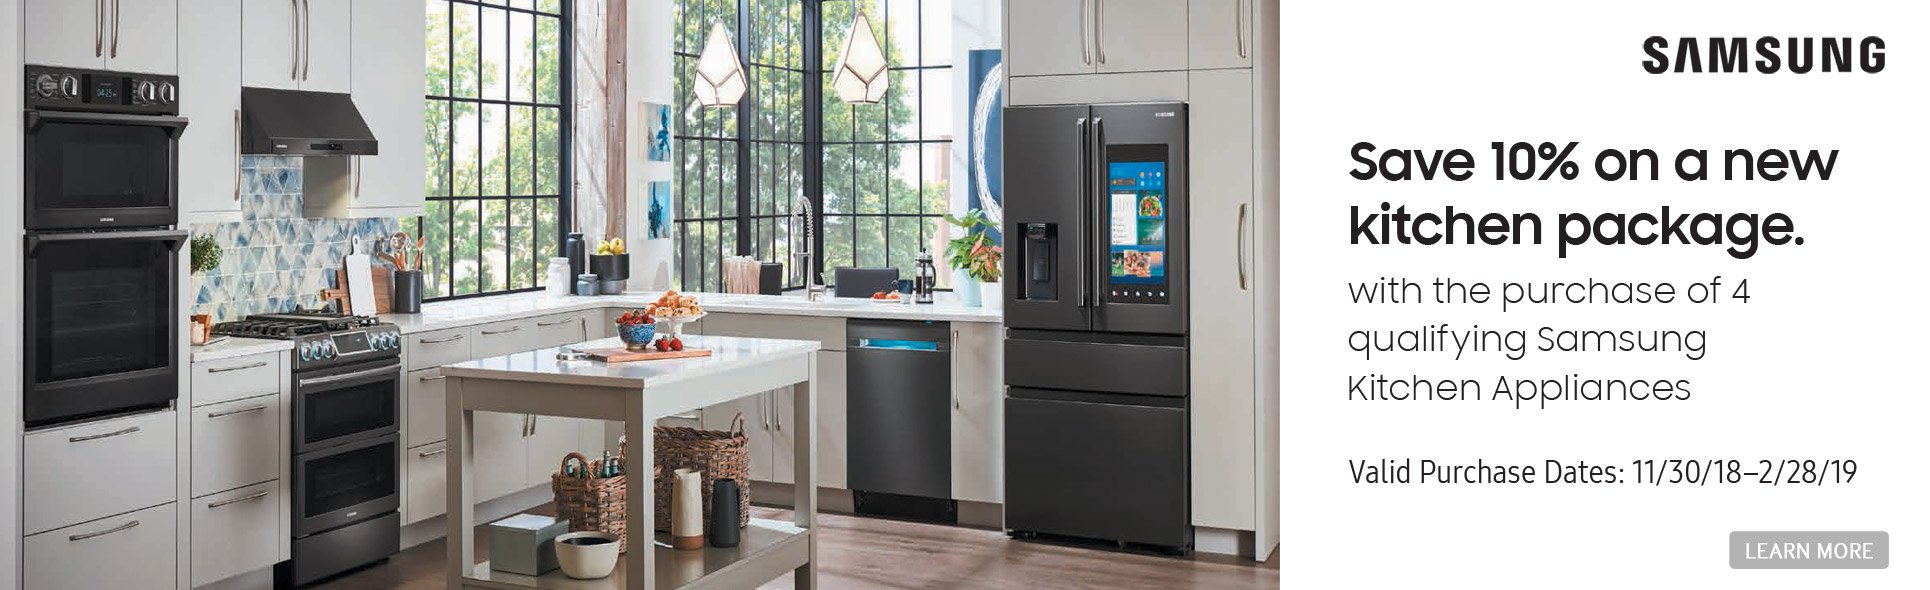 Samsung save 10% on new kitchen package